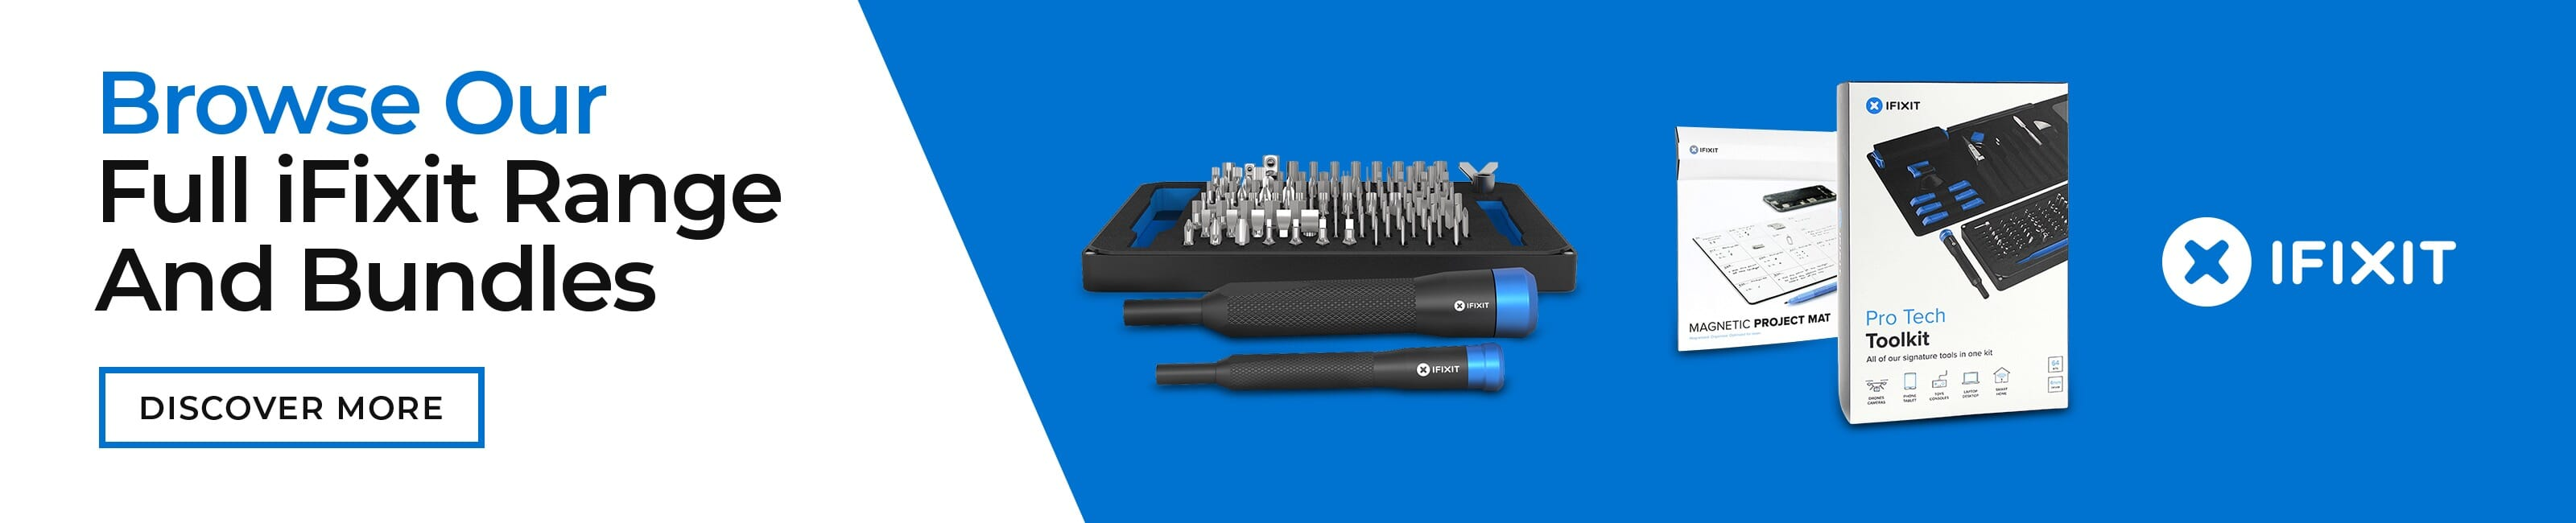 Buy iFixit Bundles